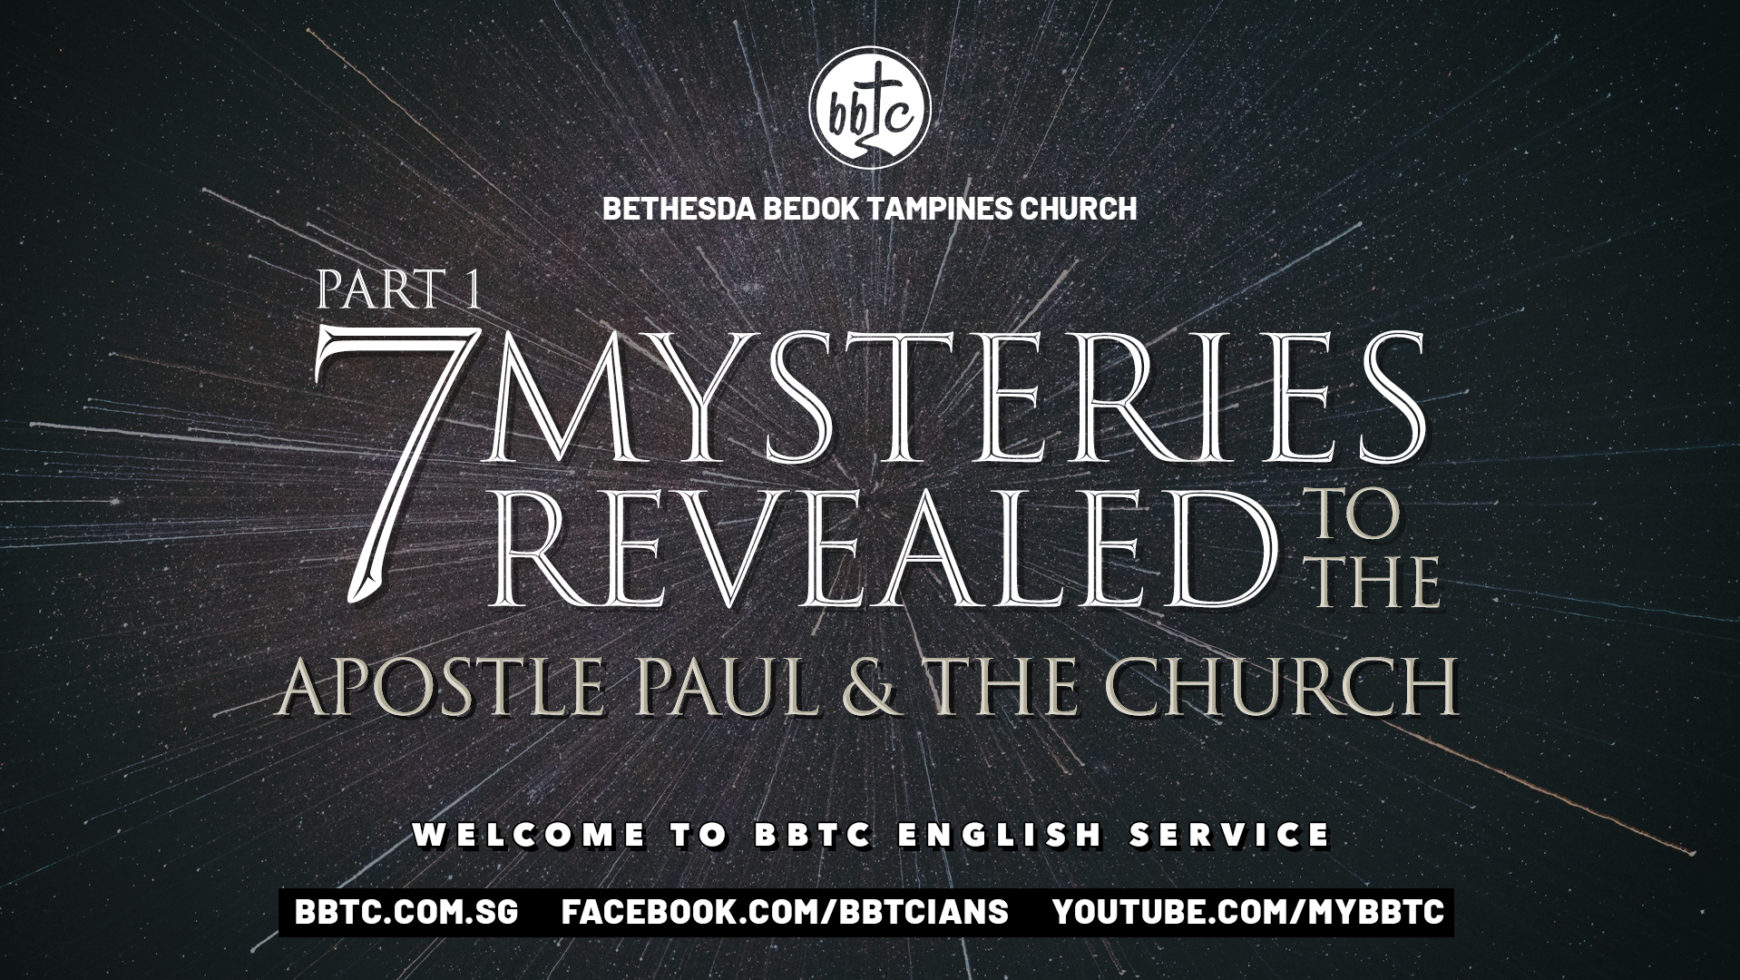 7 MYSTERIES REVEALED TO THE APOSTLE PAUL AND THE CHURCH (PART 1)